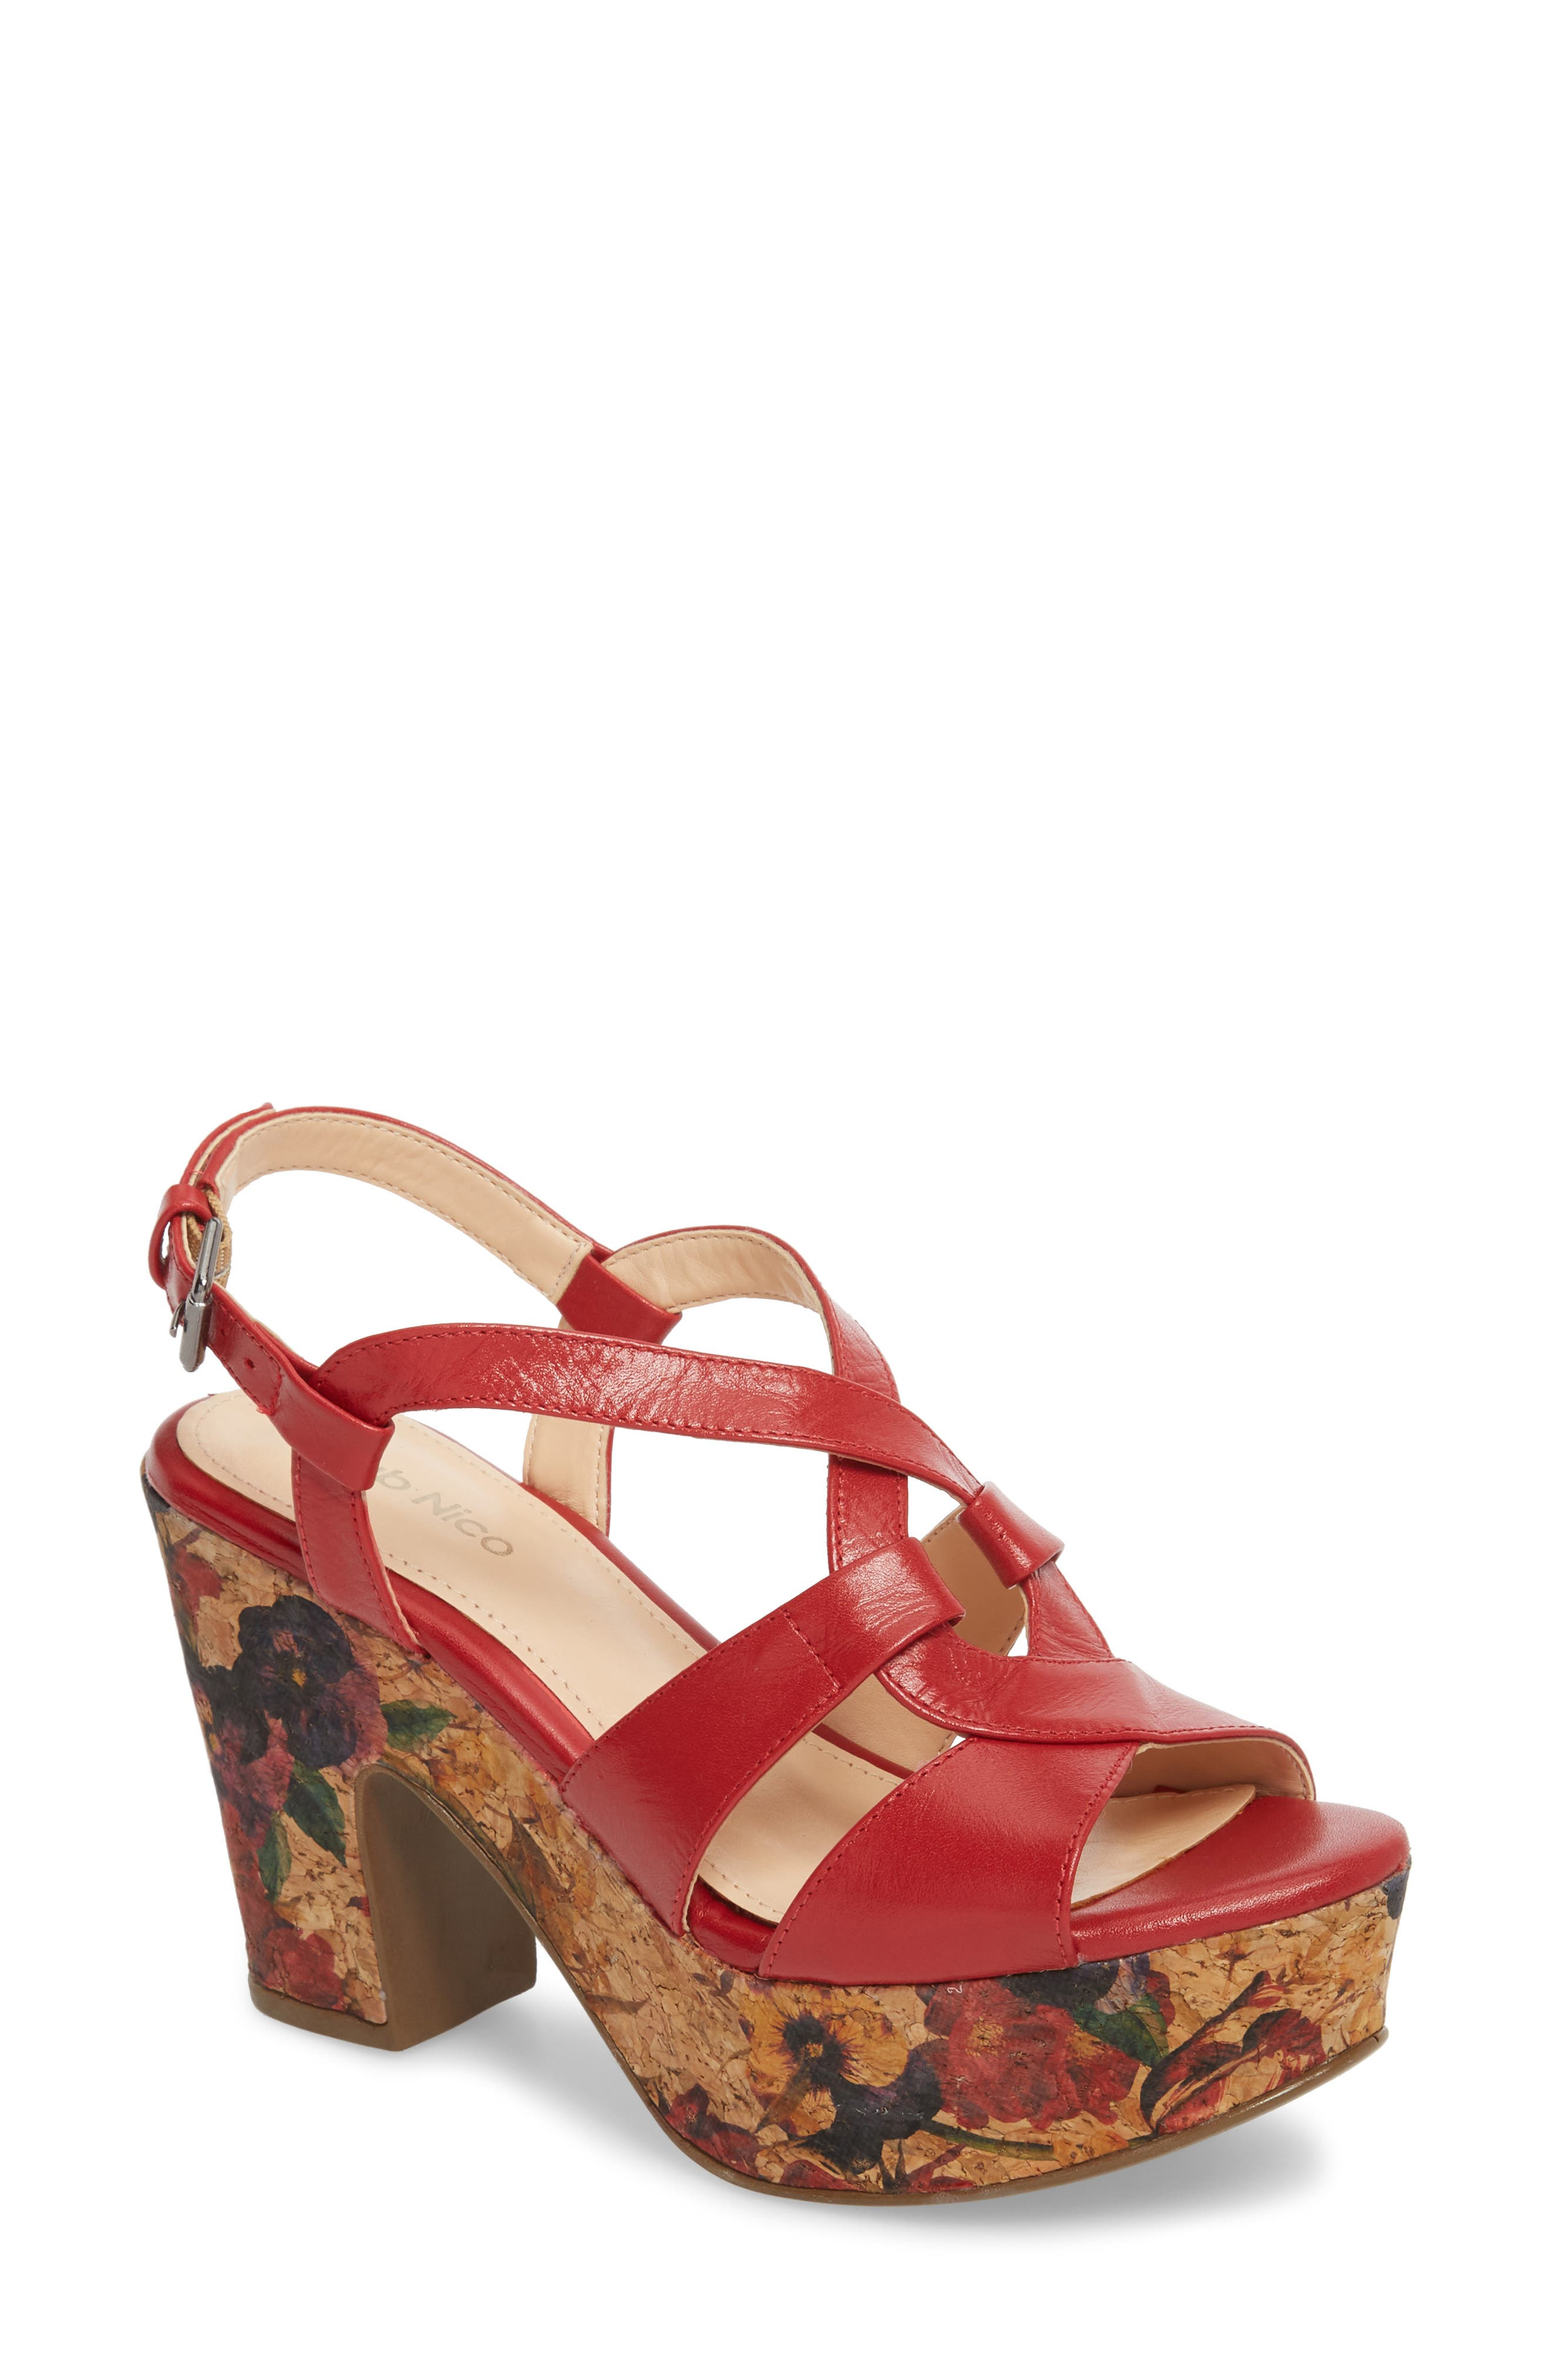 Victoria Platform Sandal,                             Main thumbnail 1, color,                             Red Leather